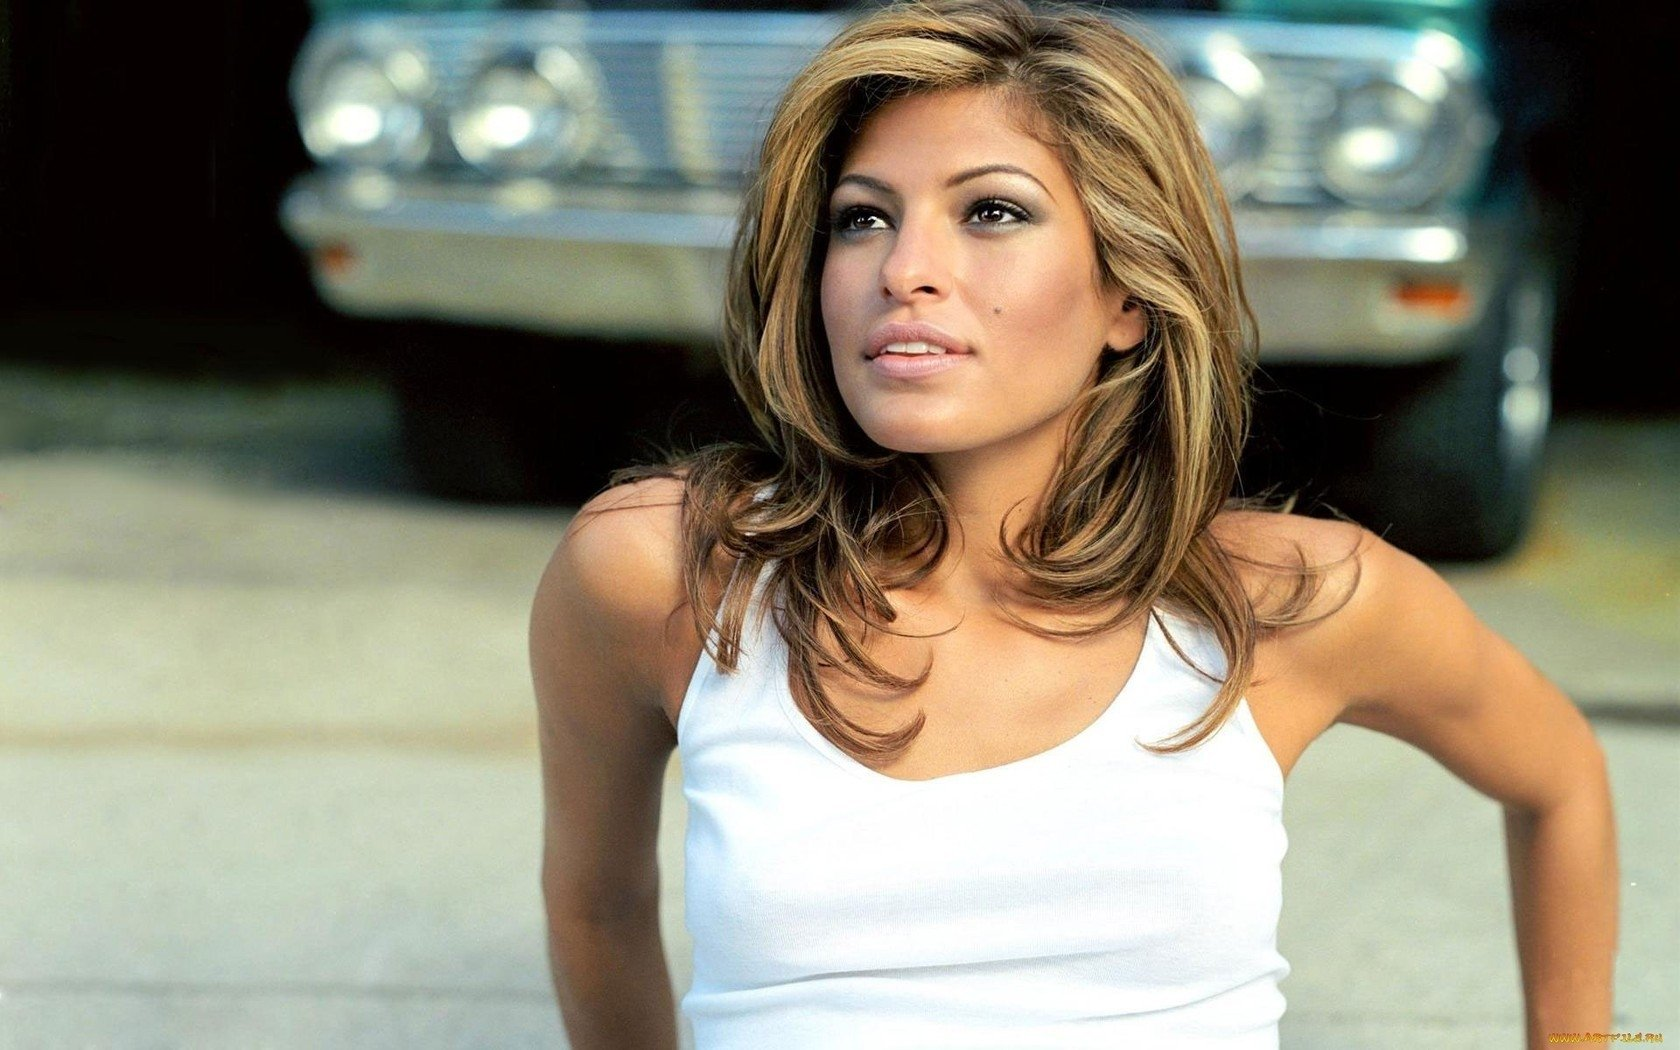 Eva Mendes Wallpapers, Pictures, Images